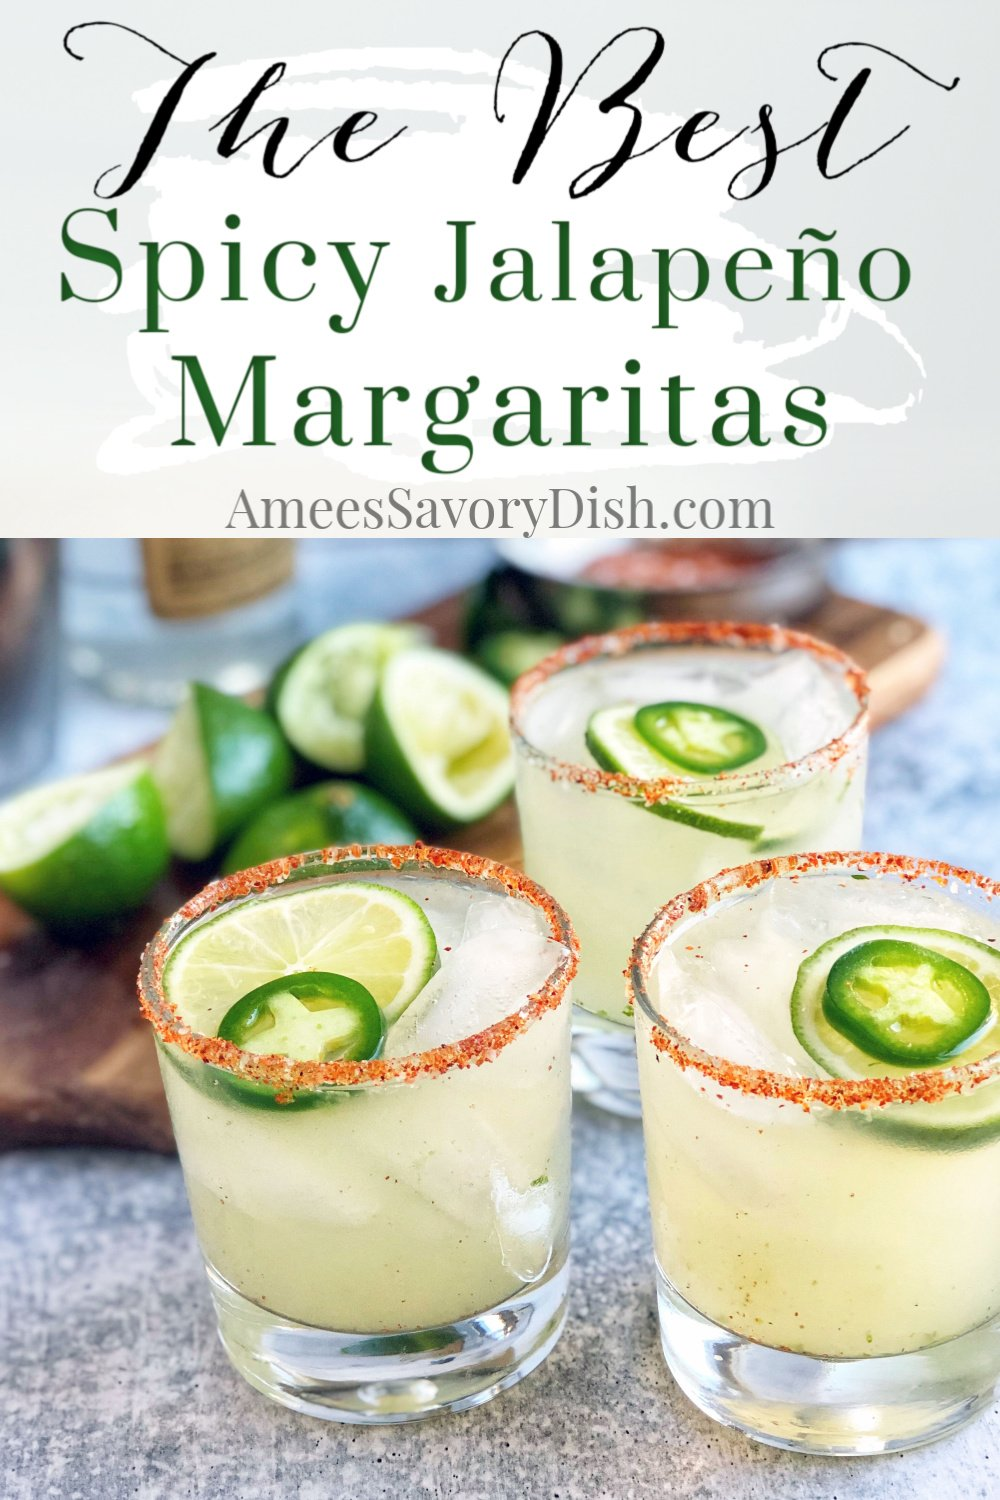 This recipe for spicy jalapeño margaritas is the perfect blend of sweet, tart, and heat with a touch of fizz for a refreshing and flavorful cocktail.#cocktailrecipe #cocktails #margaritas #margaritarecipe #spicymargaritas #jalapeñomargaritas via @Ameessavorydish